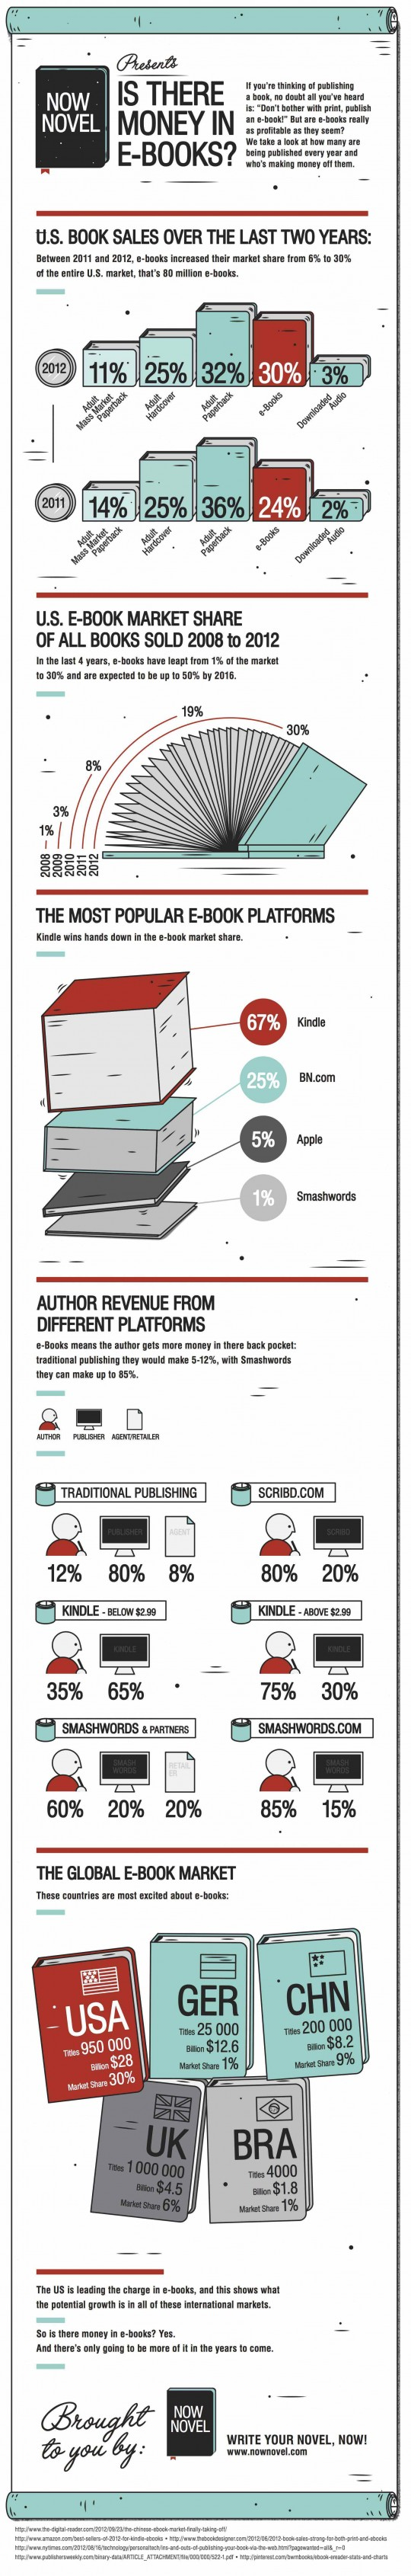 Is-there-money-in-ebooks-infographic-540